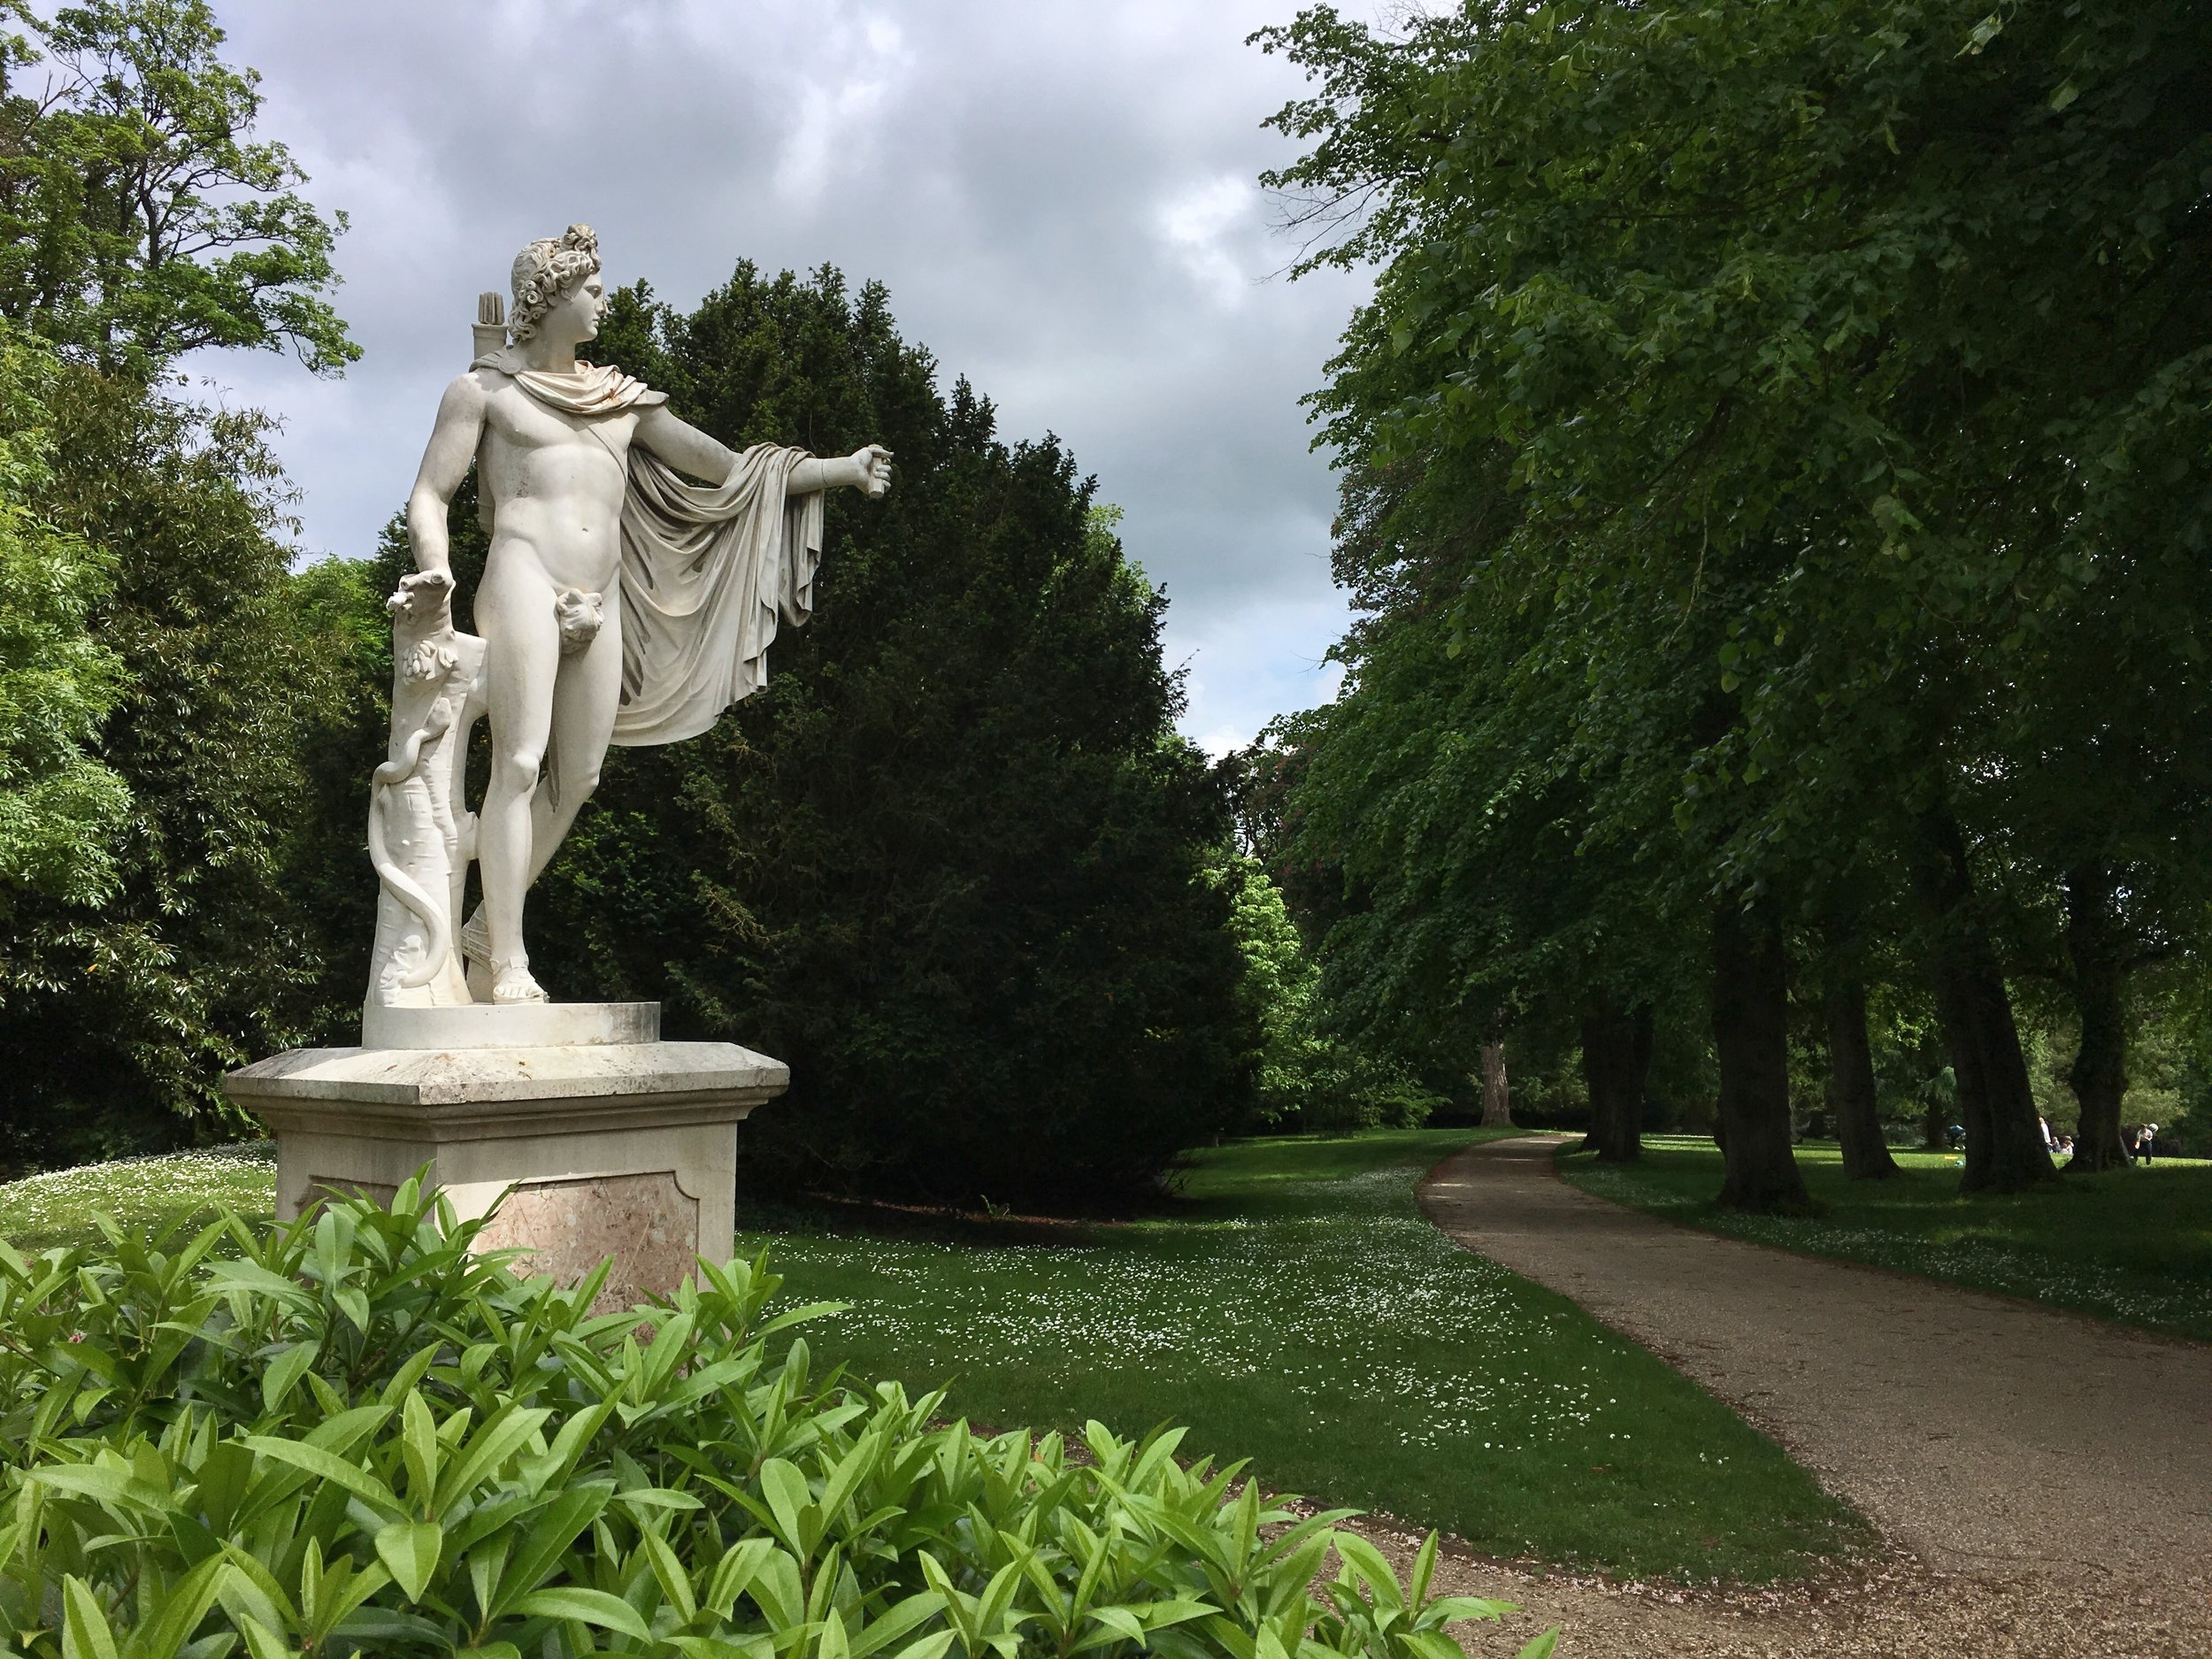 UK Waddesdon Manor lush garden statue National Trust French Chateau Rothschild Buckinghamshire garden chateau Eileen Hsieh Follow That Bug .jpg